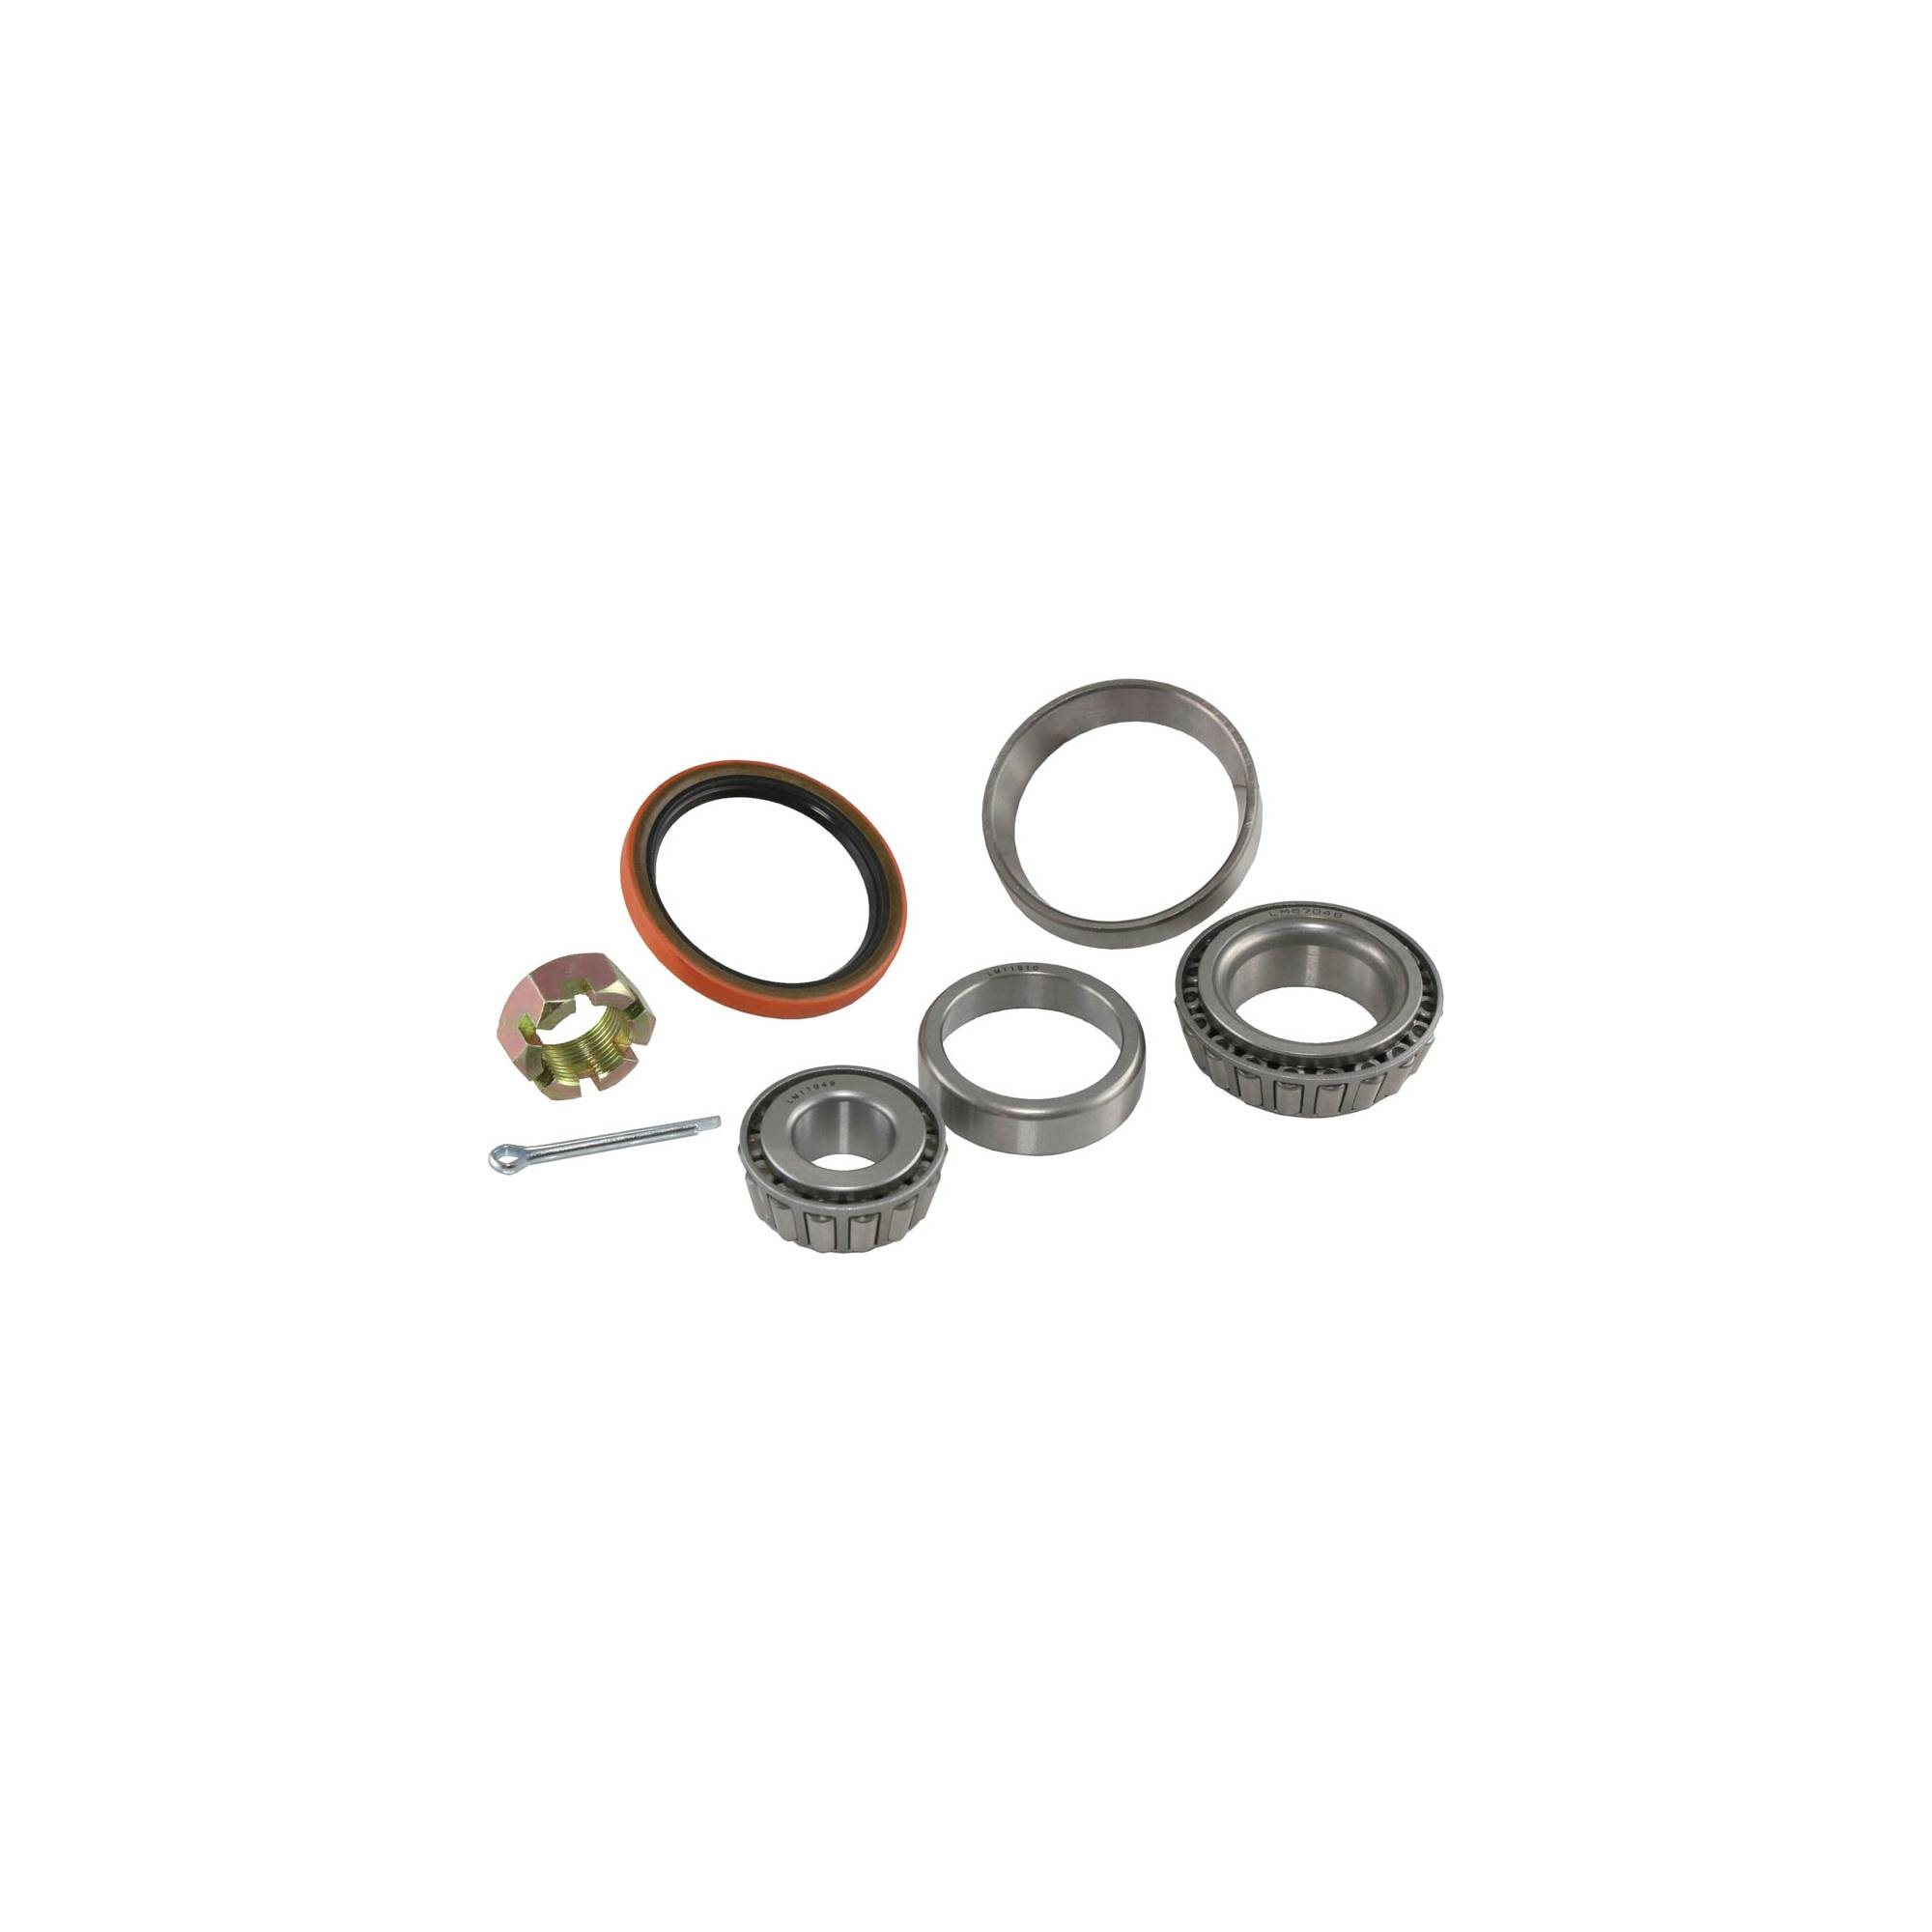 Ecklers Premier Quality Products 25-114590 Corvette Axle Wheel Bearing And Seal Rear